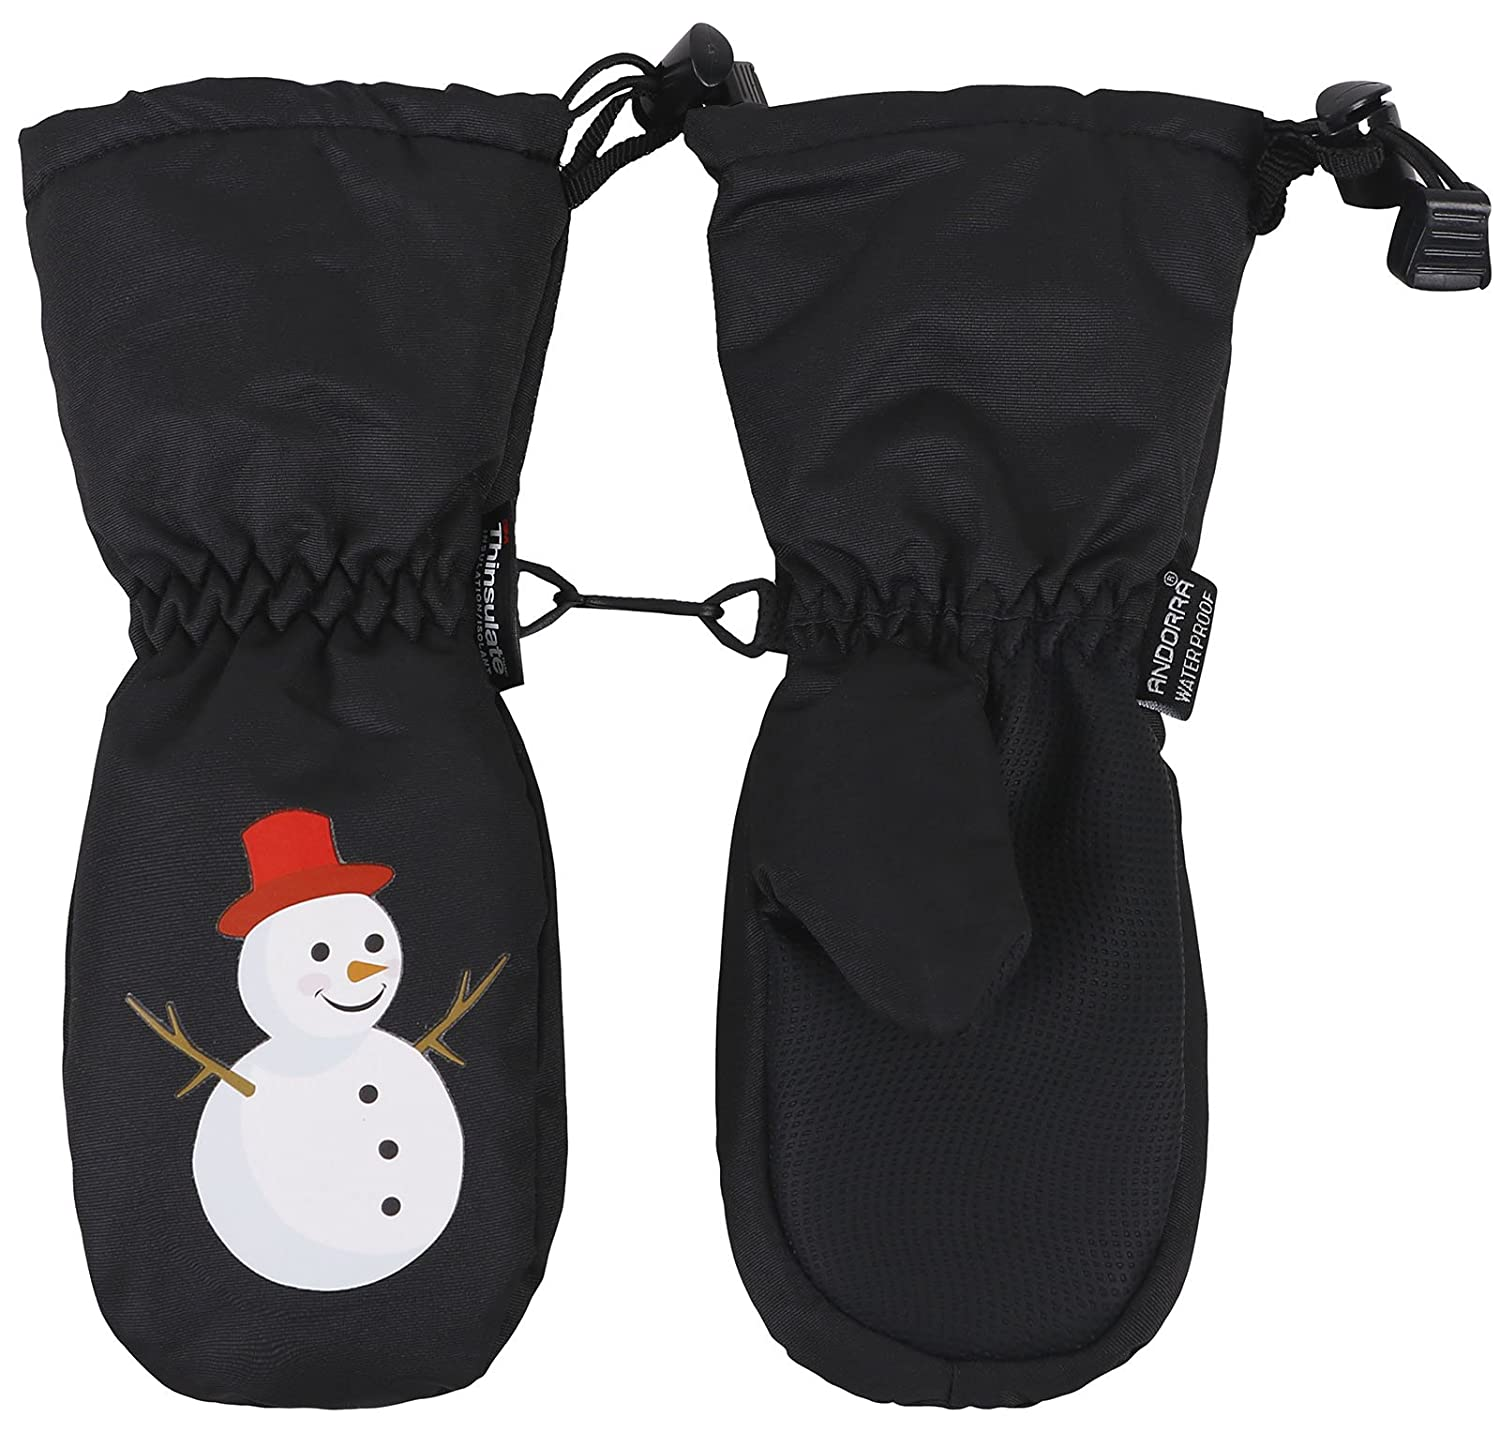 ANDORRA Kids Premium Weather-Proof Thinsulate Snow Mittens,Extra Long Cuff